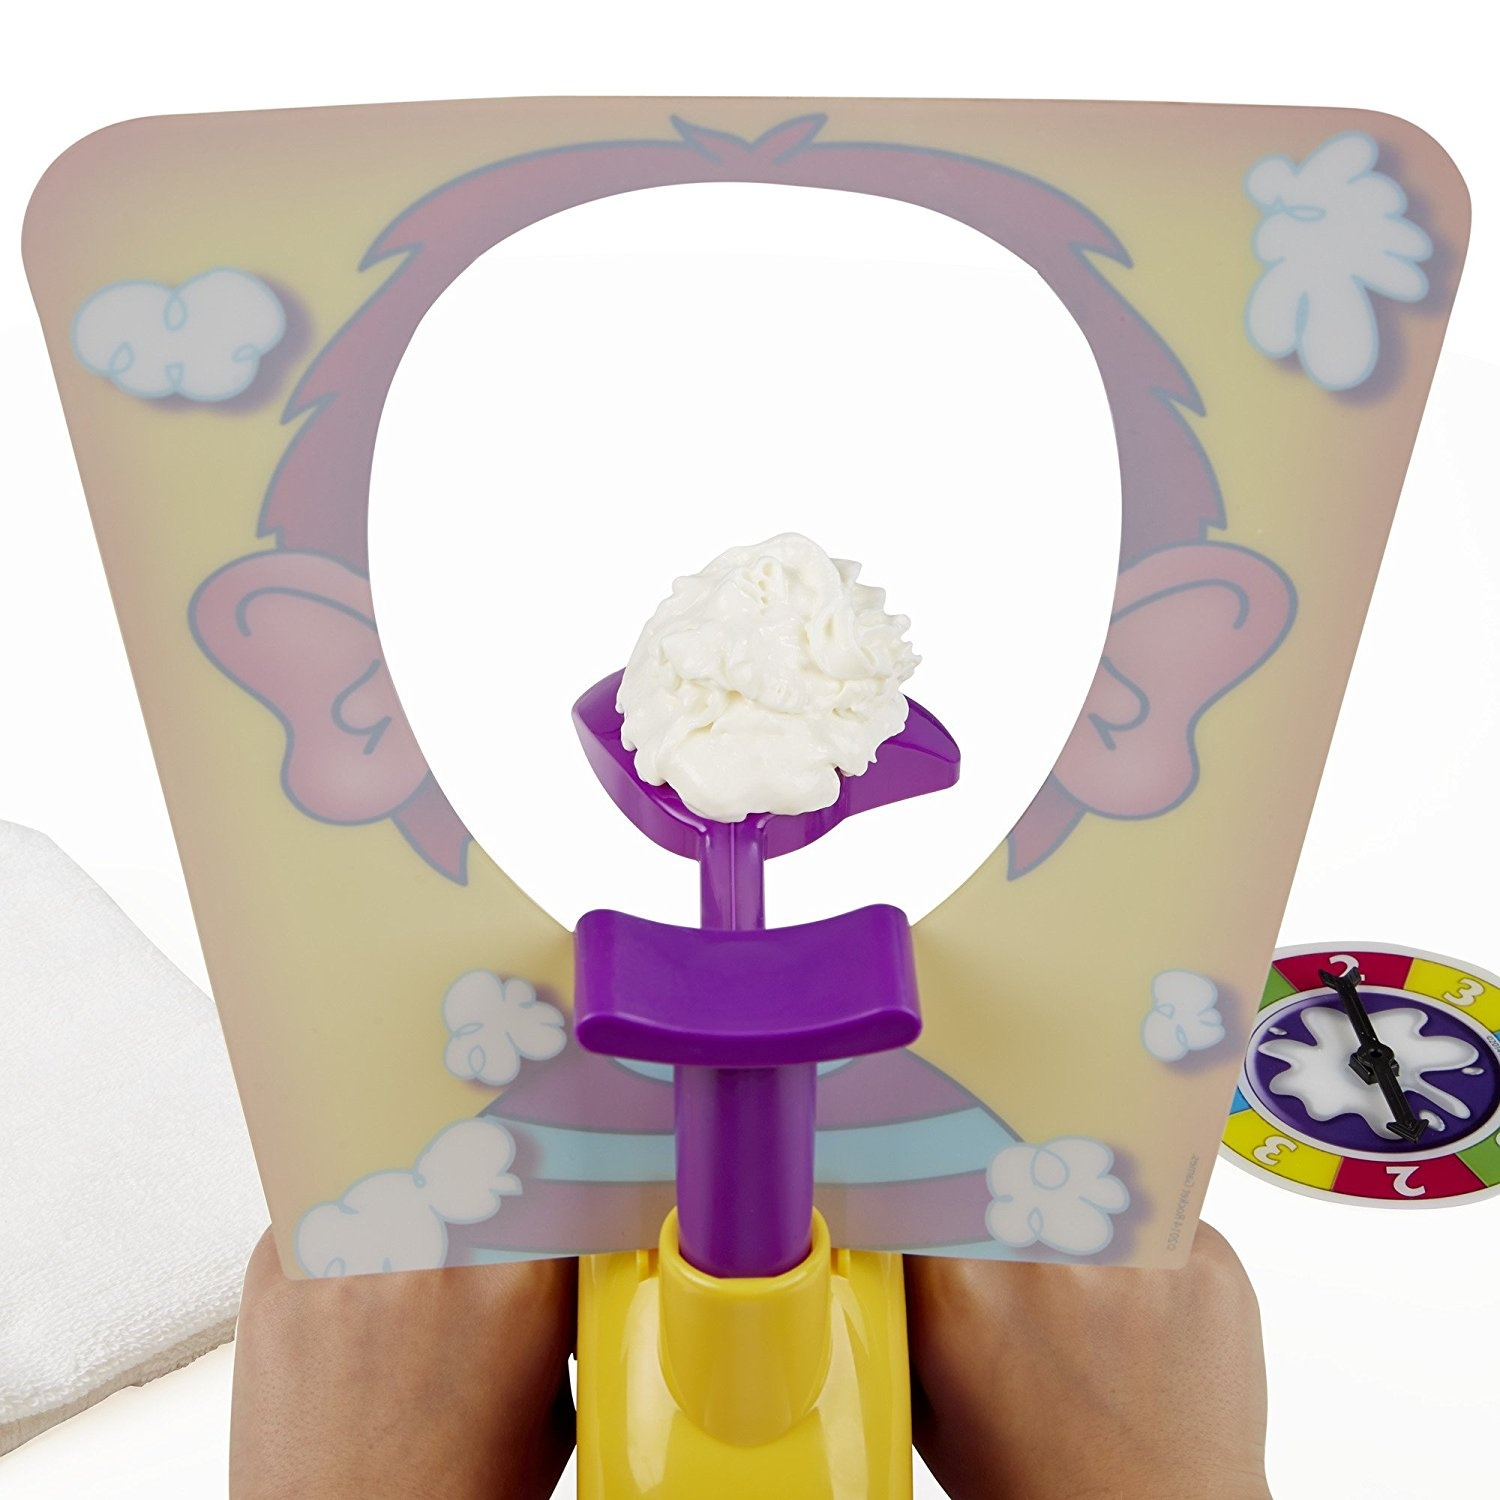 Pie Face Game Toys Toys Buy Online From Fishpond Com Au